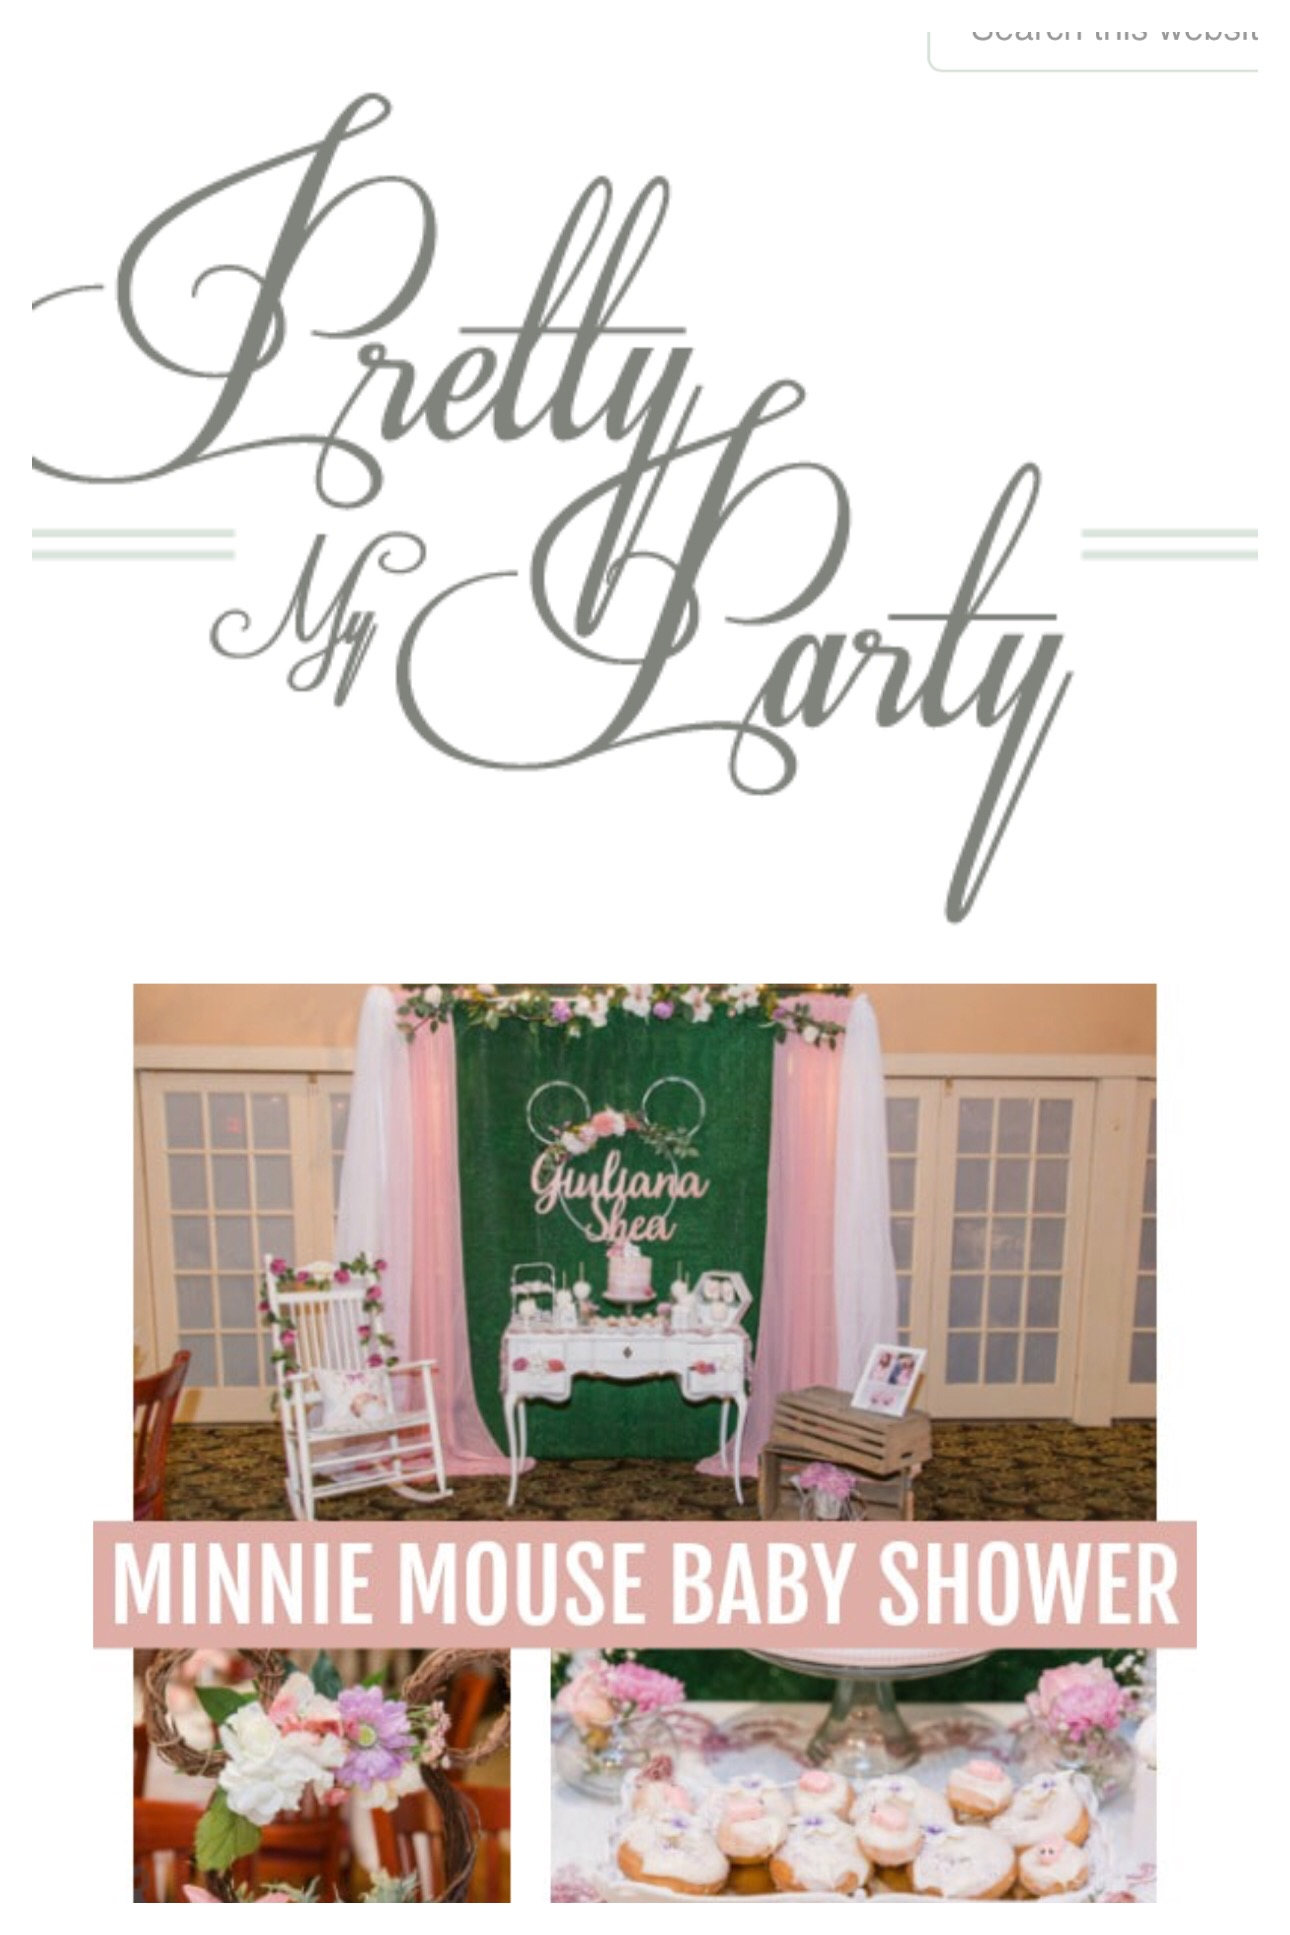 Garden Minnie Mouse Baby Shower Feature in     Pretty My Party